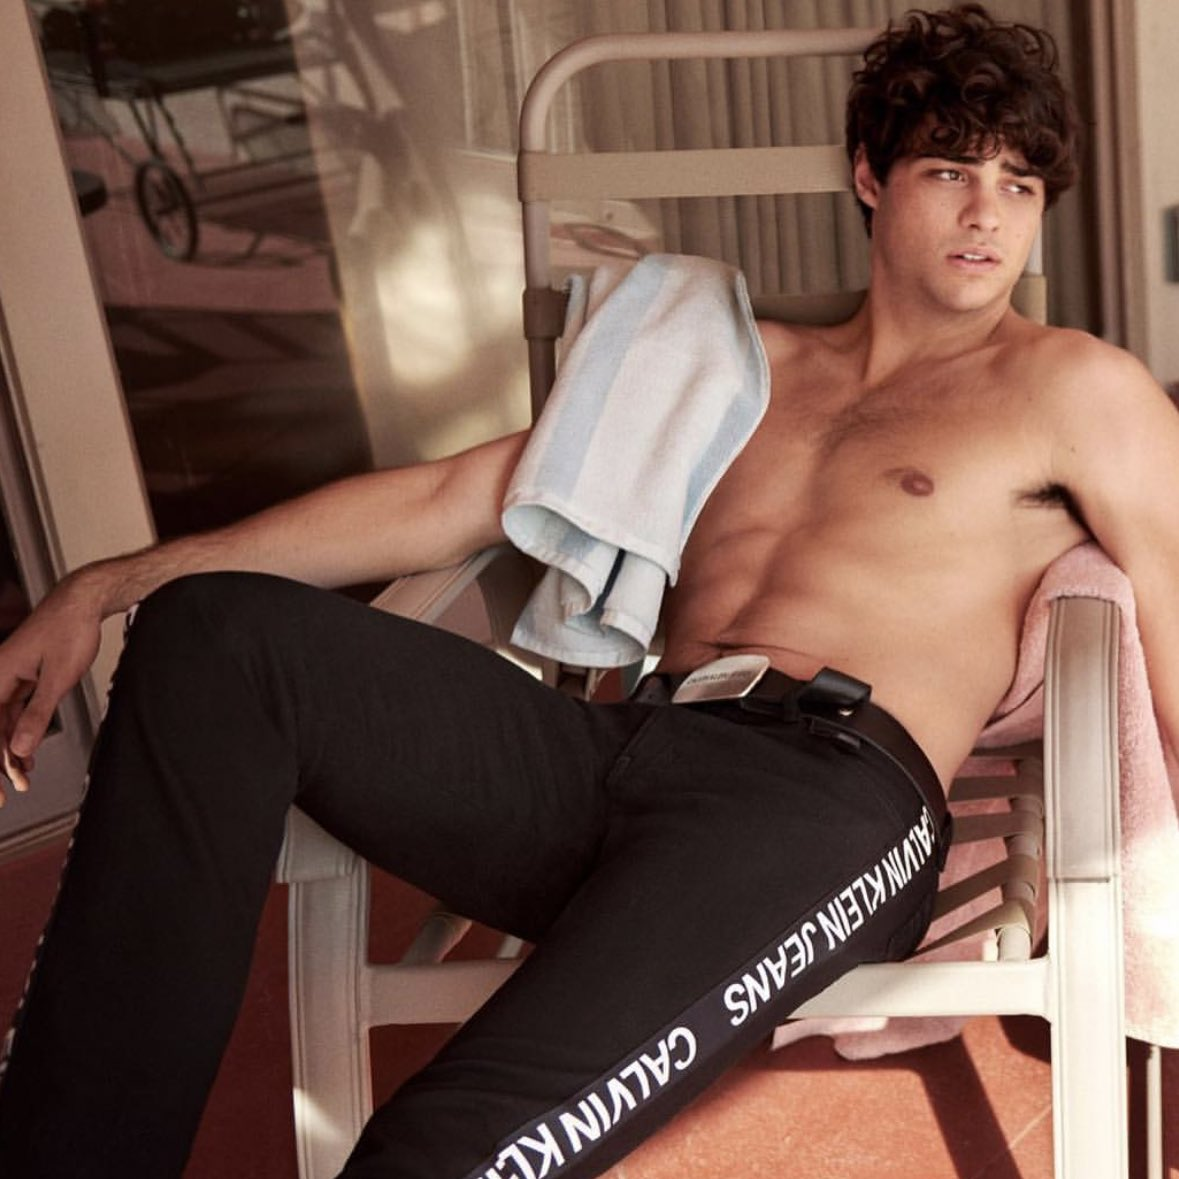 15 Reactions To Noah Centineo's New Calvin Klein Pics